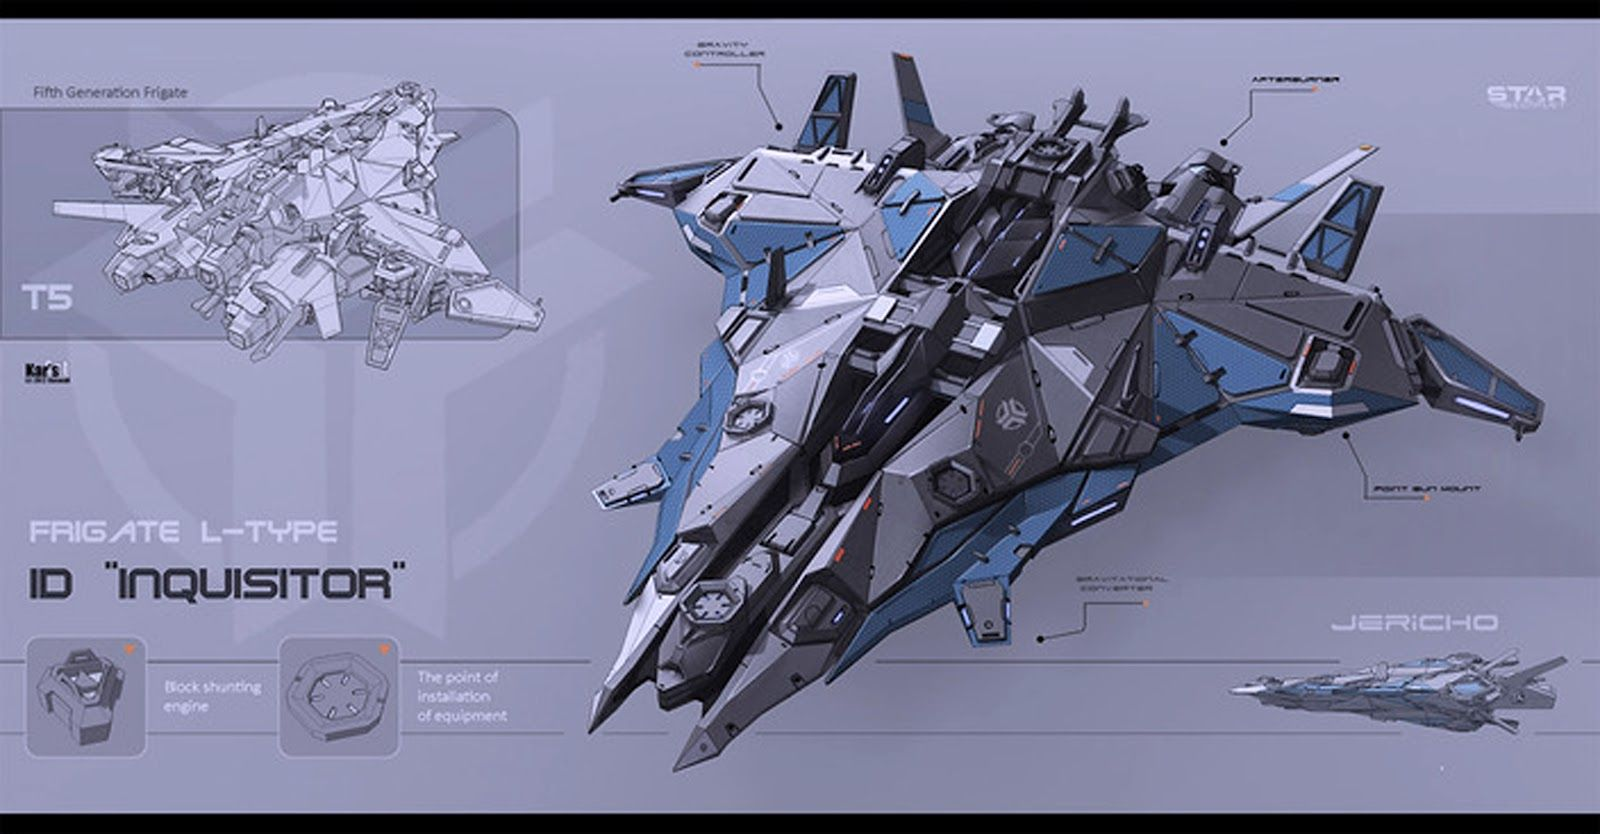 Pin By Eli Trinh On Tech Sci Fi Aircrafts Jet Space Ships